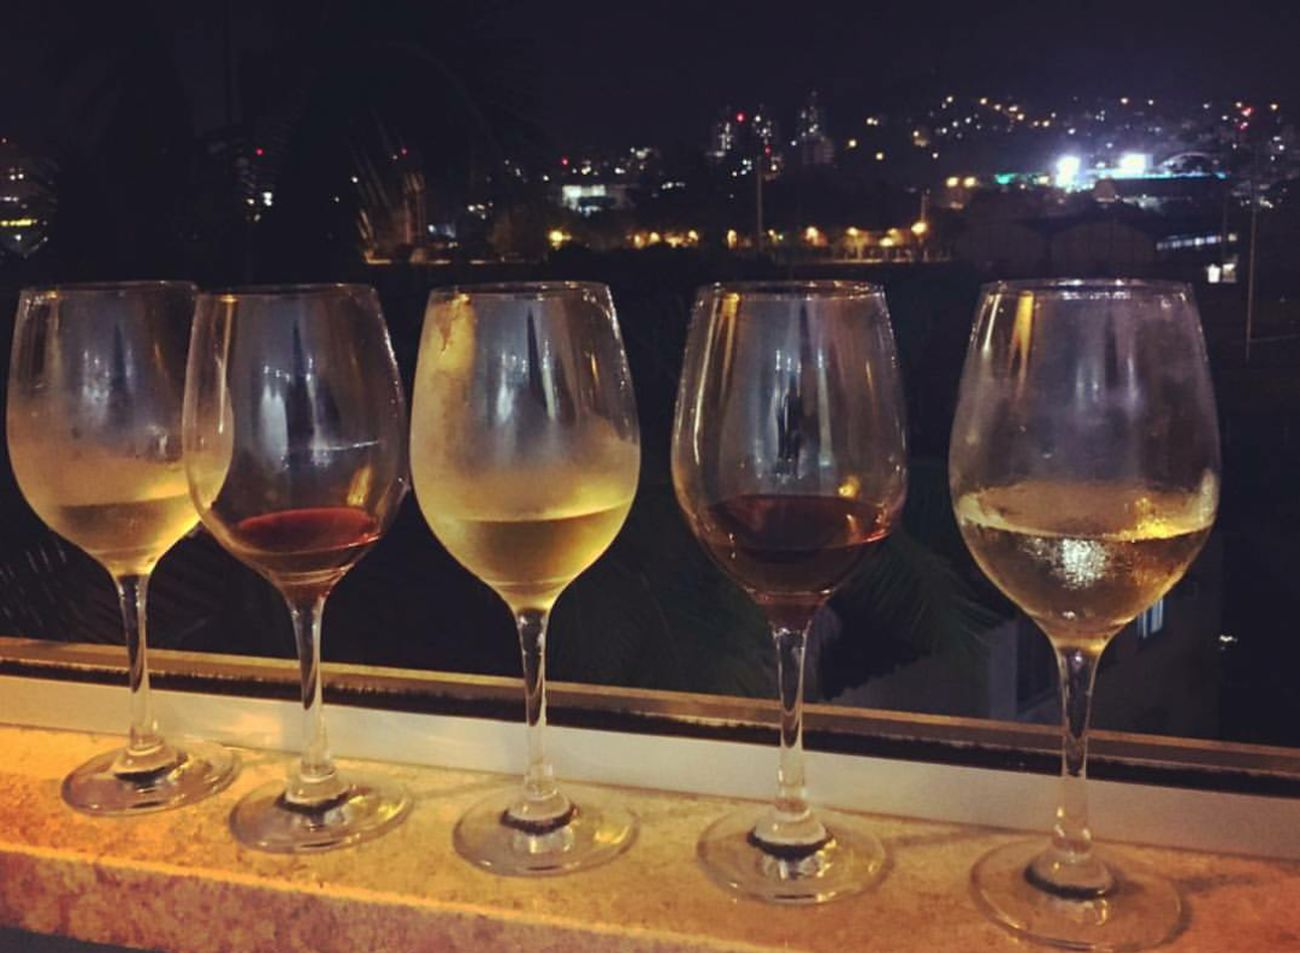 Different wines but equal bowls😒😒😣😬😠😡😤😟😨😨 very bad😣😖 Wineglass Food And Drink Still Life Wine Table Drink Alcohol Wine Glass Night Illuminated Water Finishing Work Day Enjoy My Friends Mybest Friends ❤ Myfavoriteplace Myisland Relaxing Relaxing Moments Rosewine WineRed Winewithe 😒😣😑